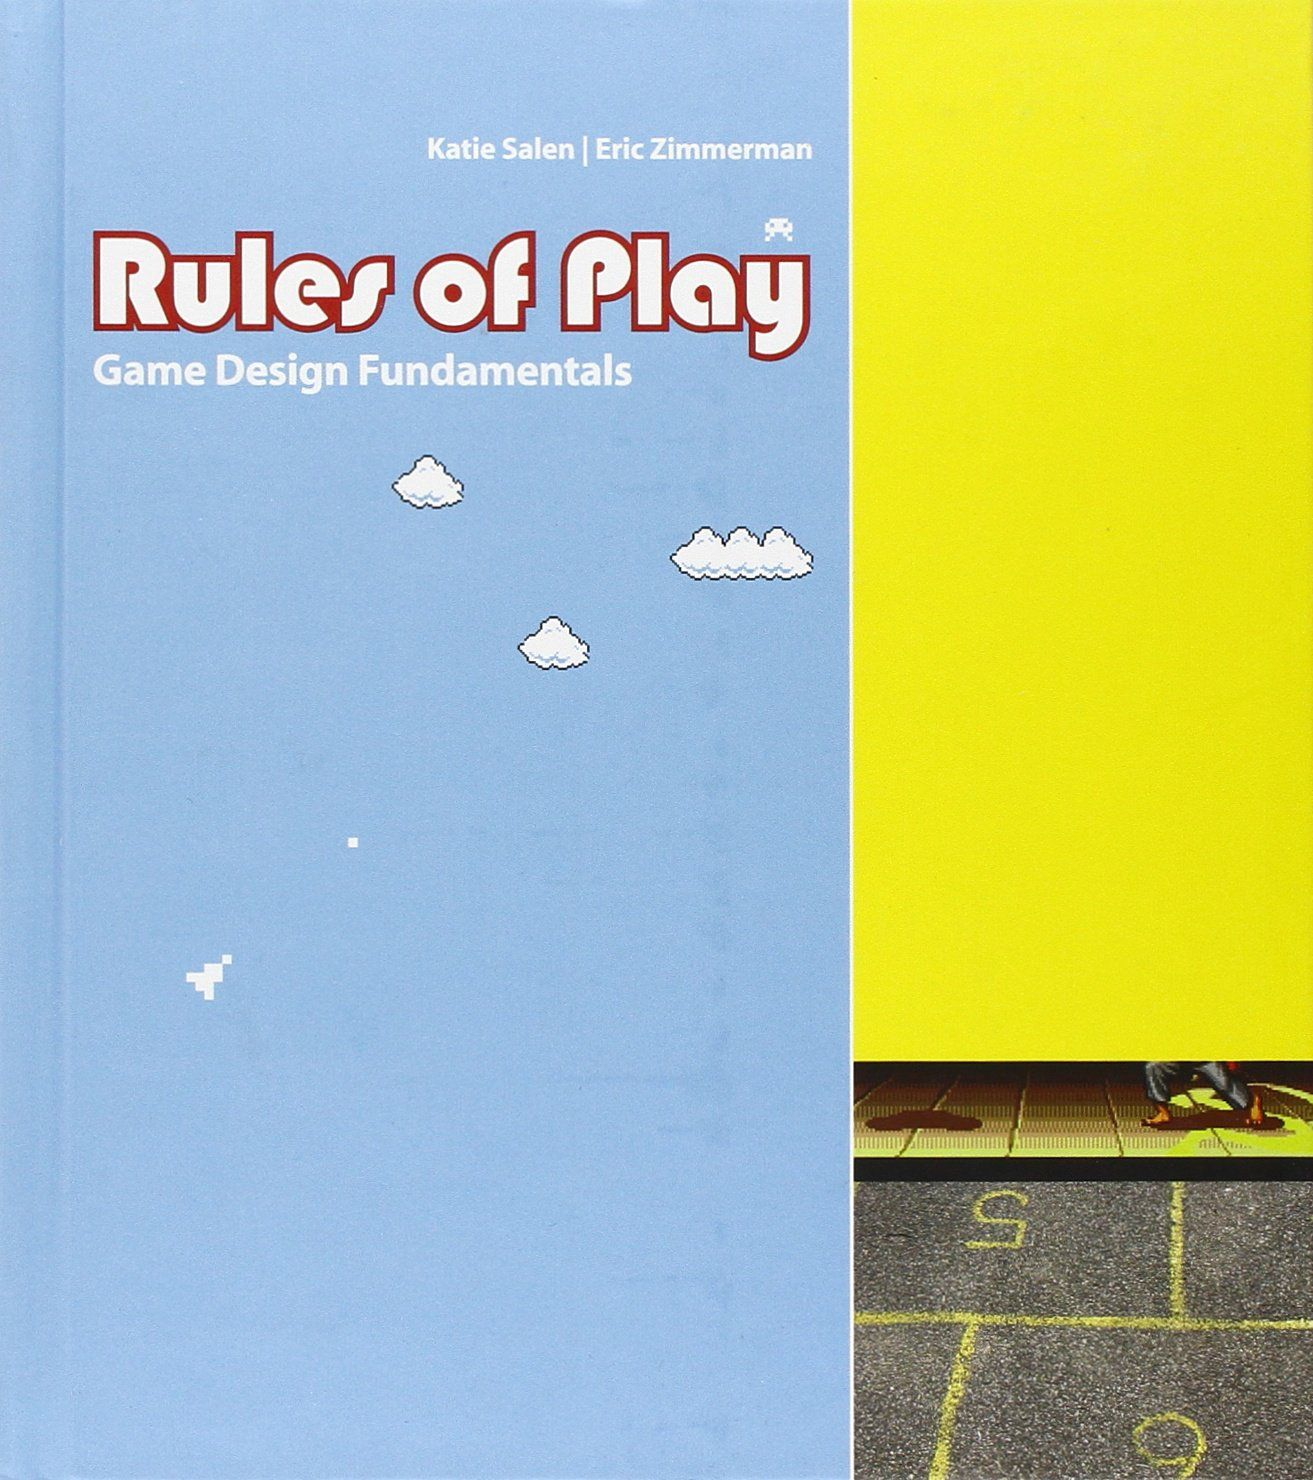 Rules of Play: Game Design Fundamentals: Amazon.co.uk: Katie Salen ...